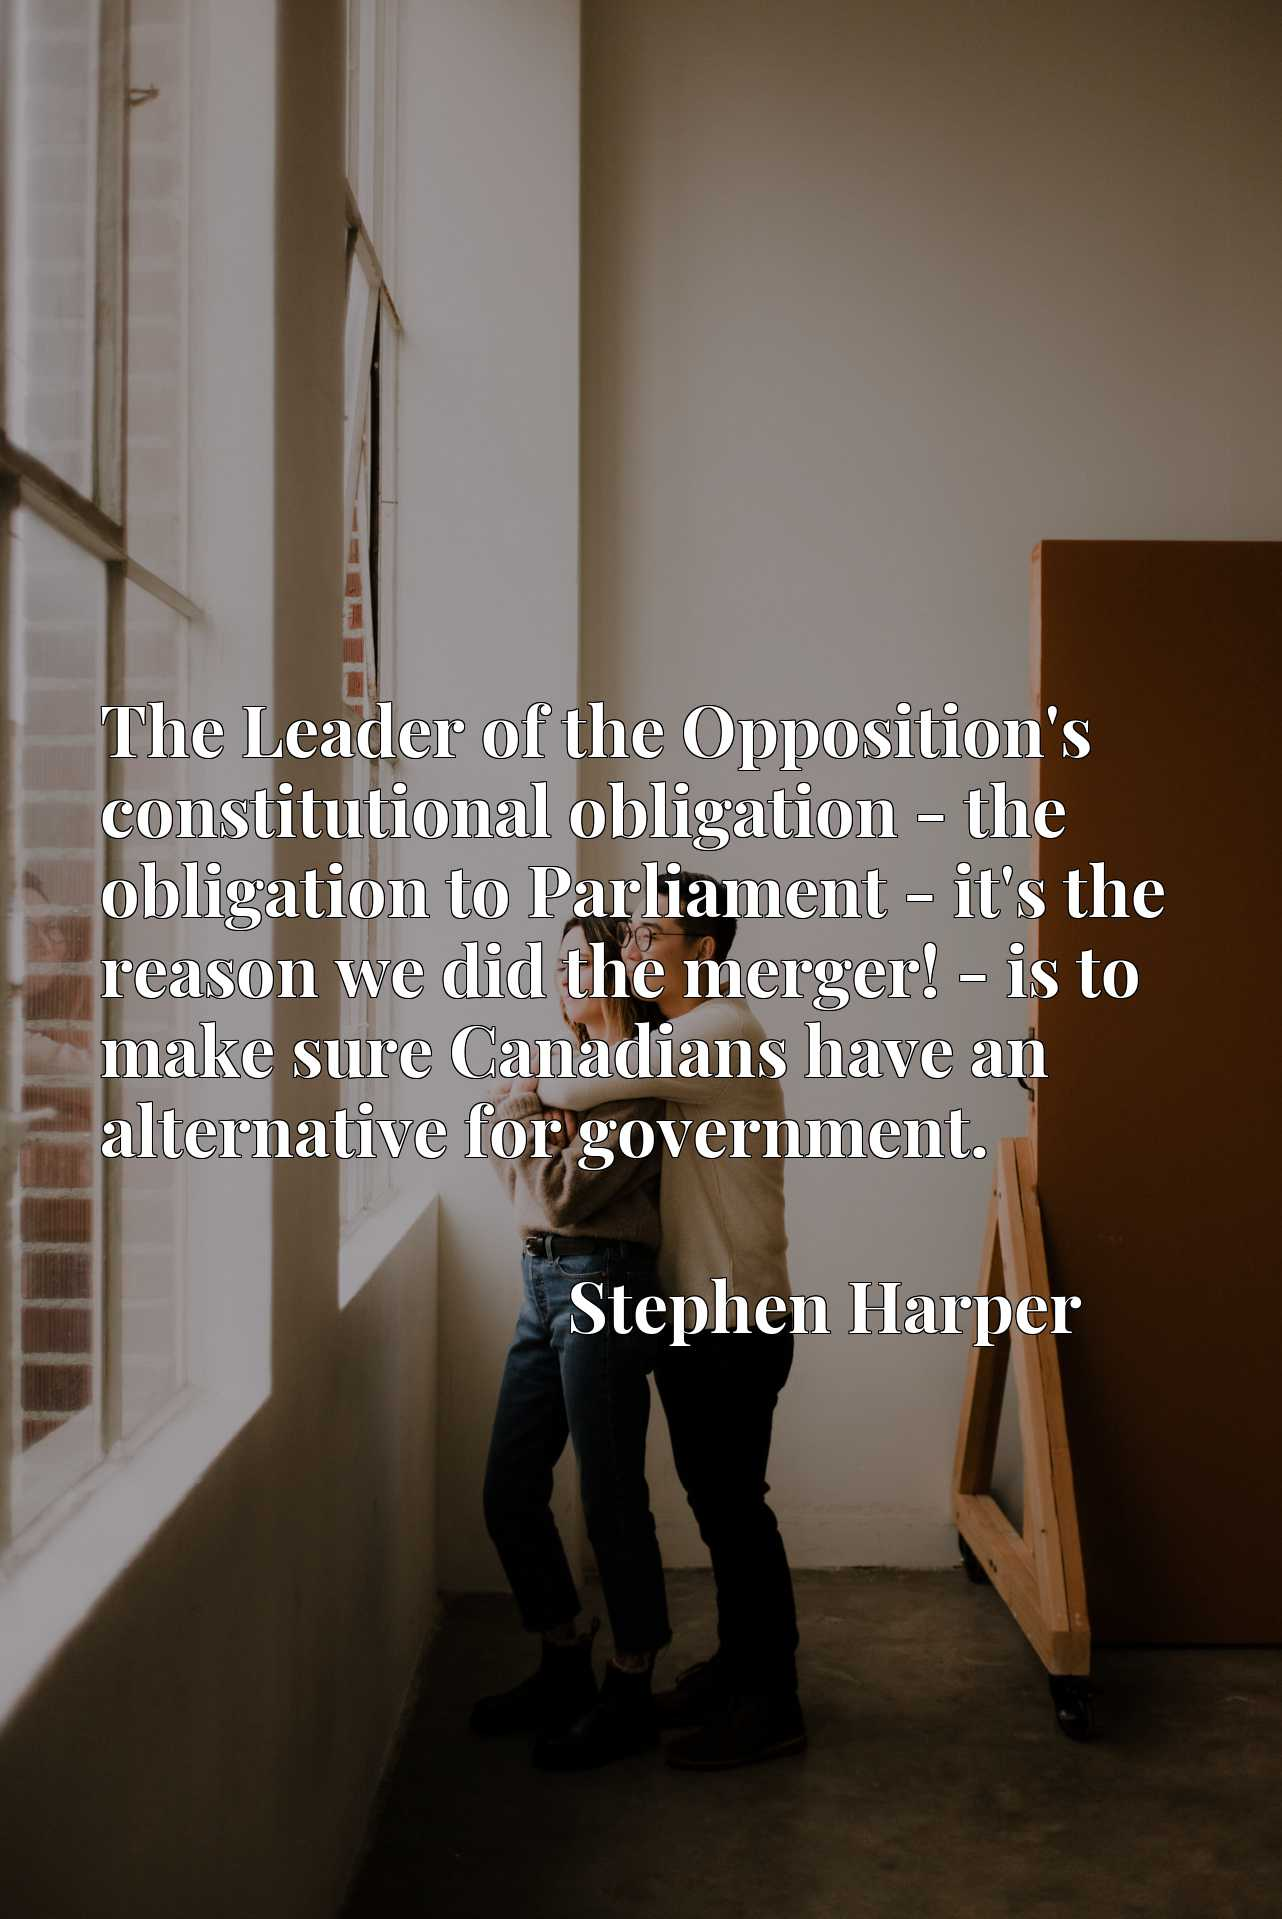 The Leader of the Opposition's constitutional obligation - the obligation to Parliament - it's the reason we did the merger! - is to make sure Canadians have an alternative for government.